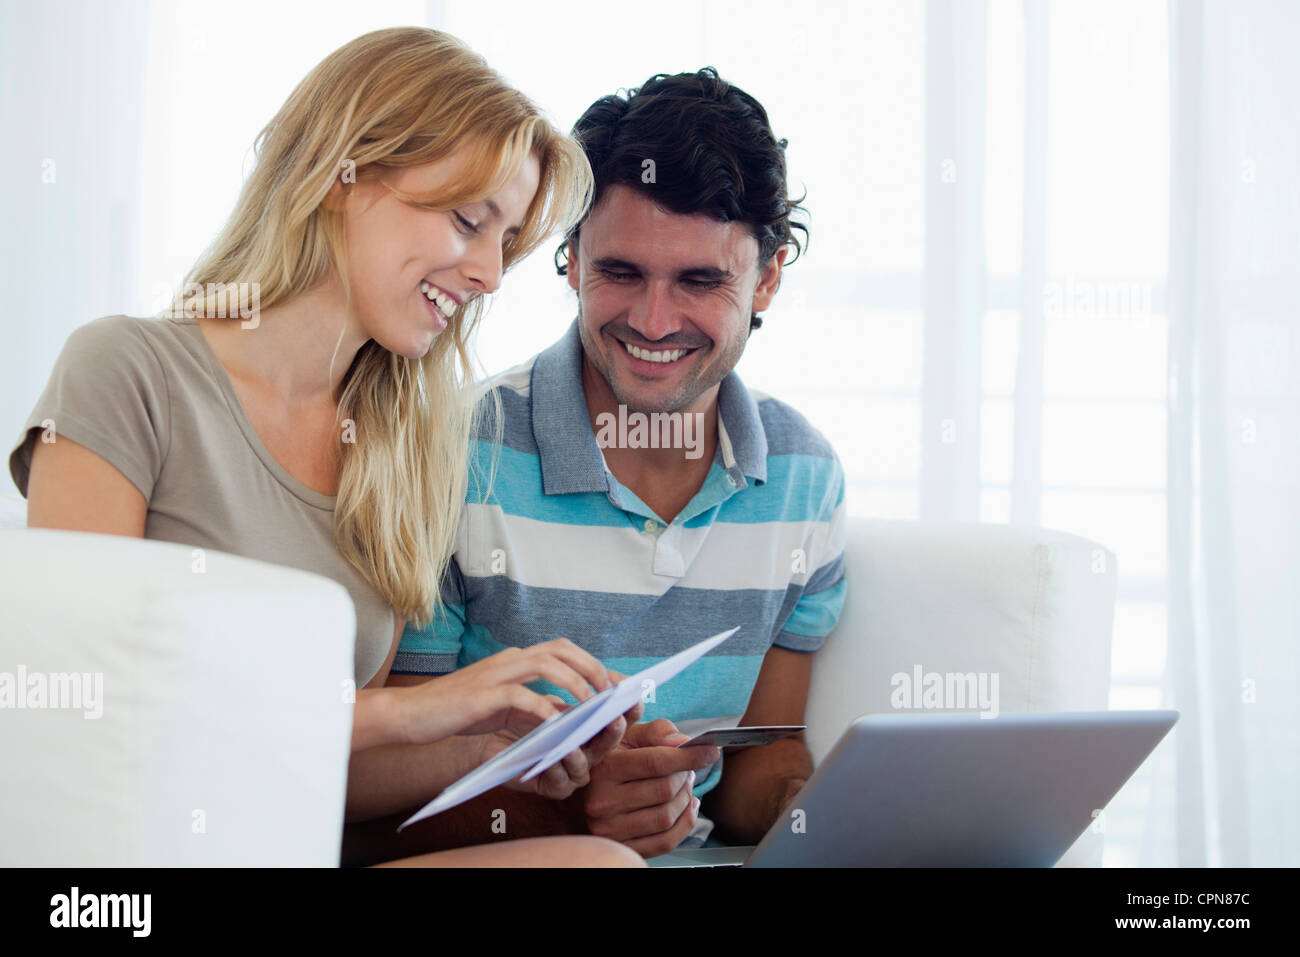 Couple paying bill online Photo Stock